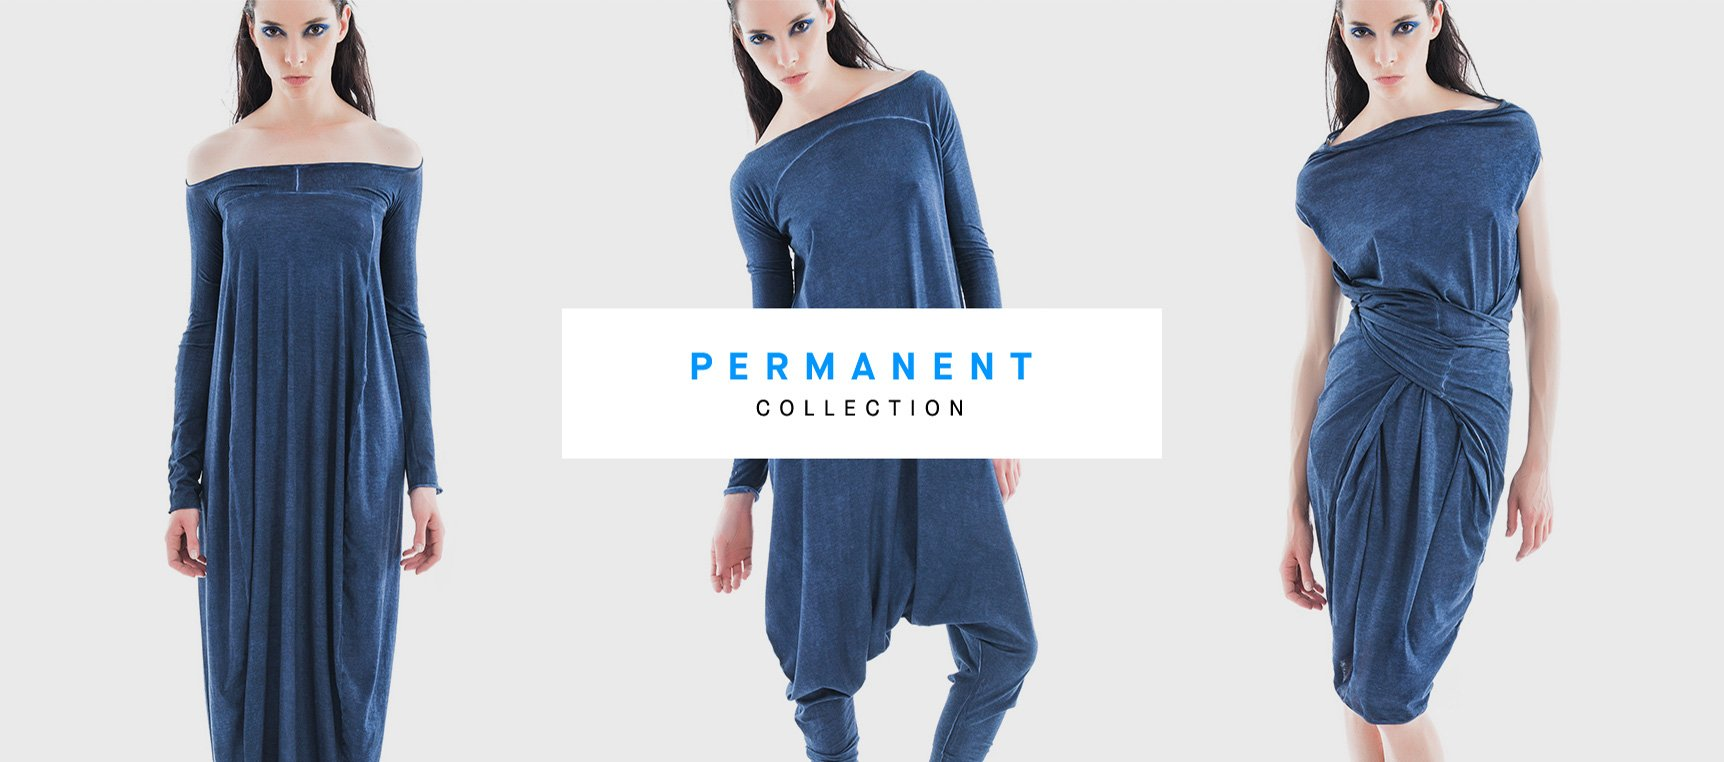 http://store.lemuriastyle.com/collections/lemuria-permanent-collection